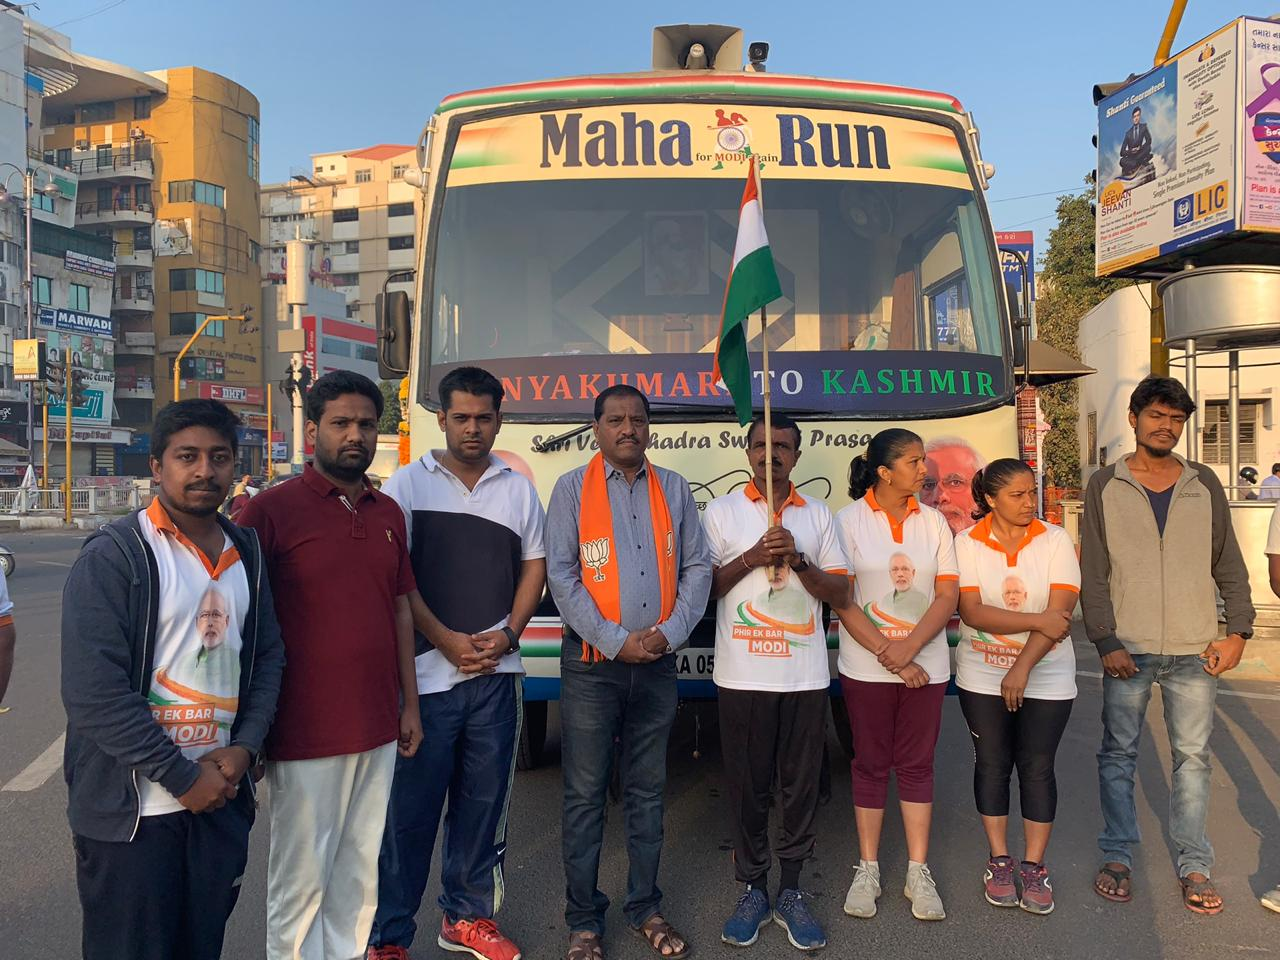 Indian couple running to spread the good governance of PM Narendra Modi